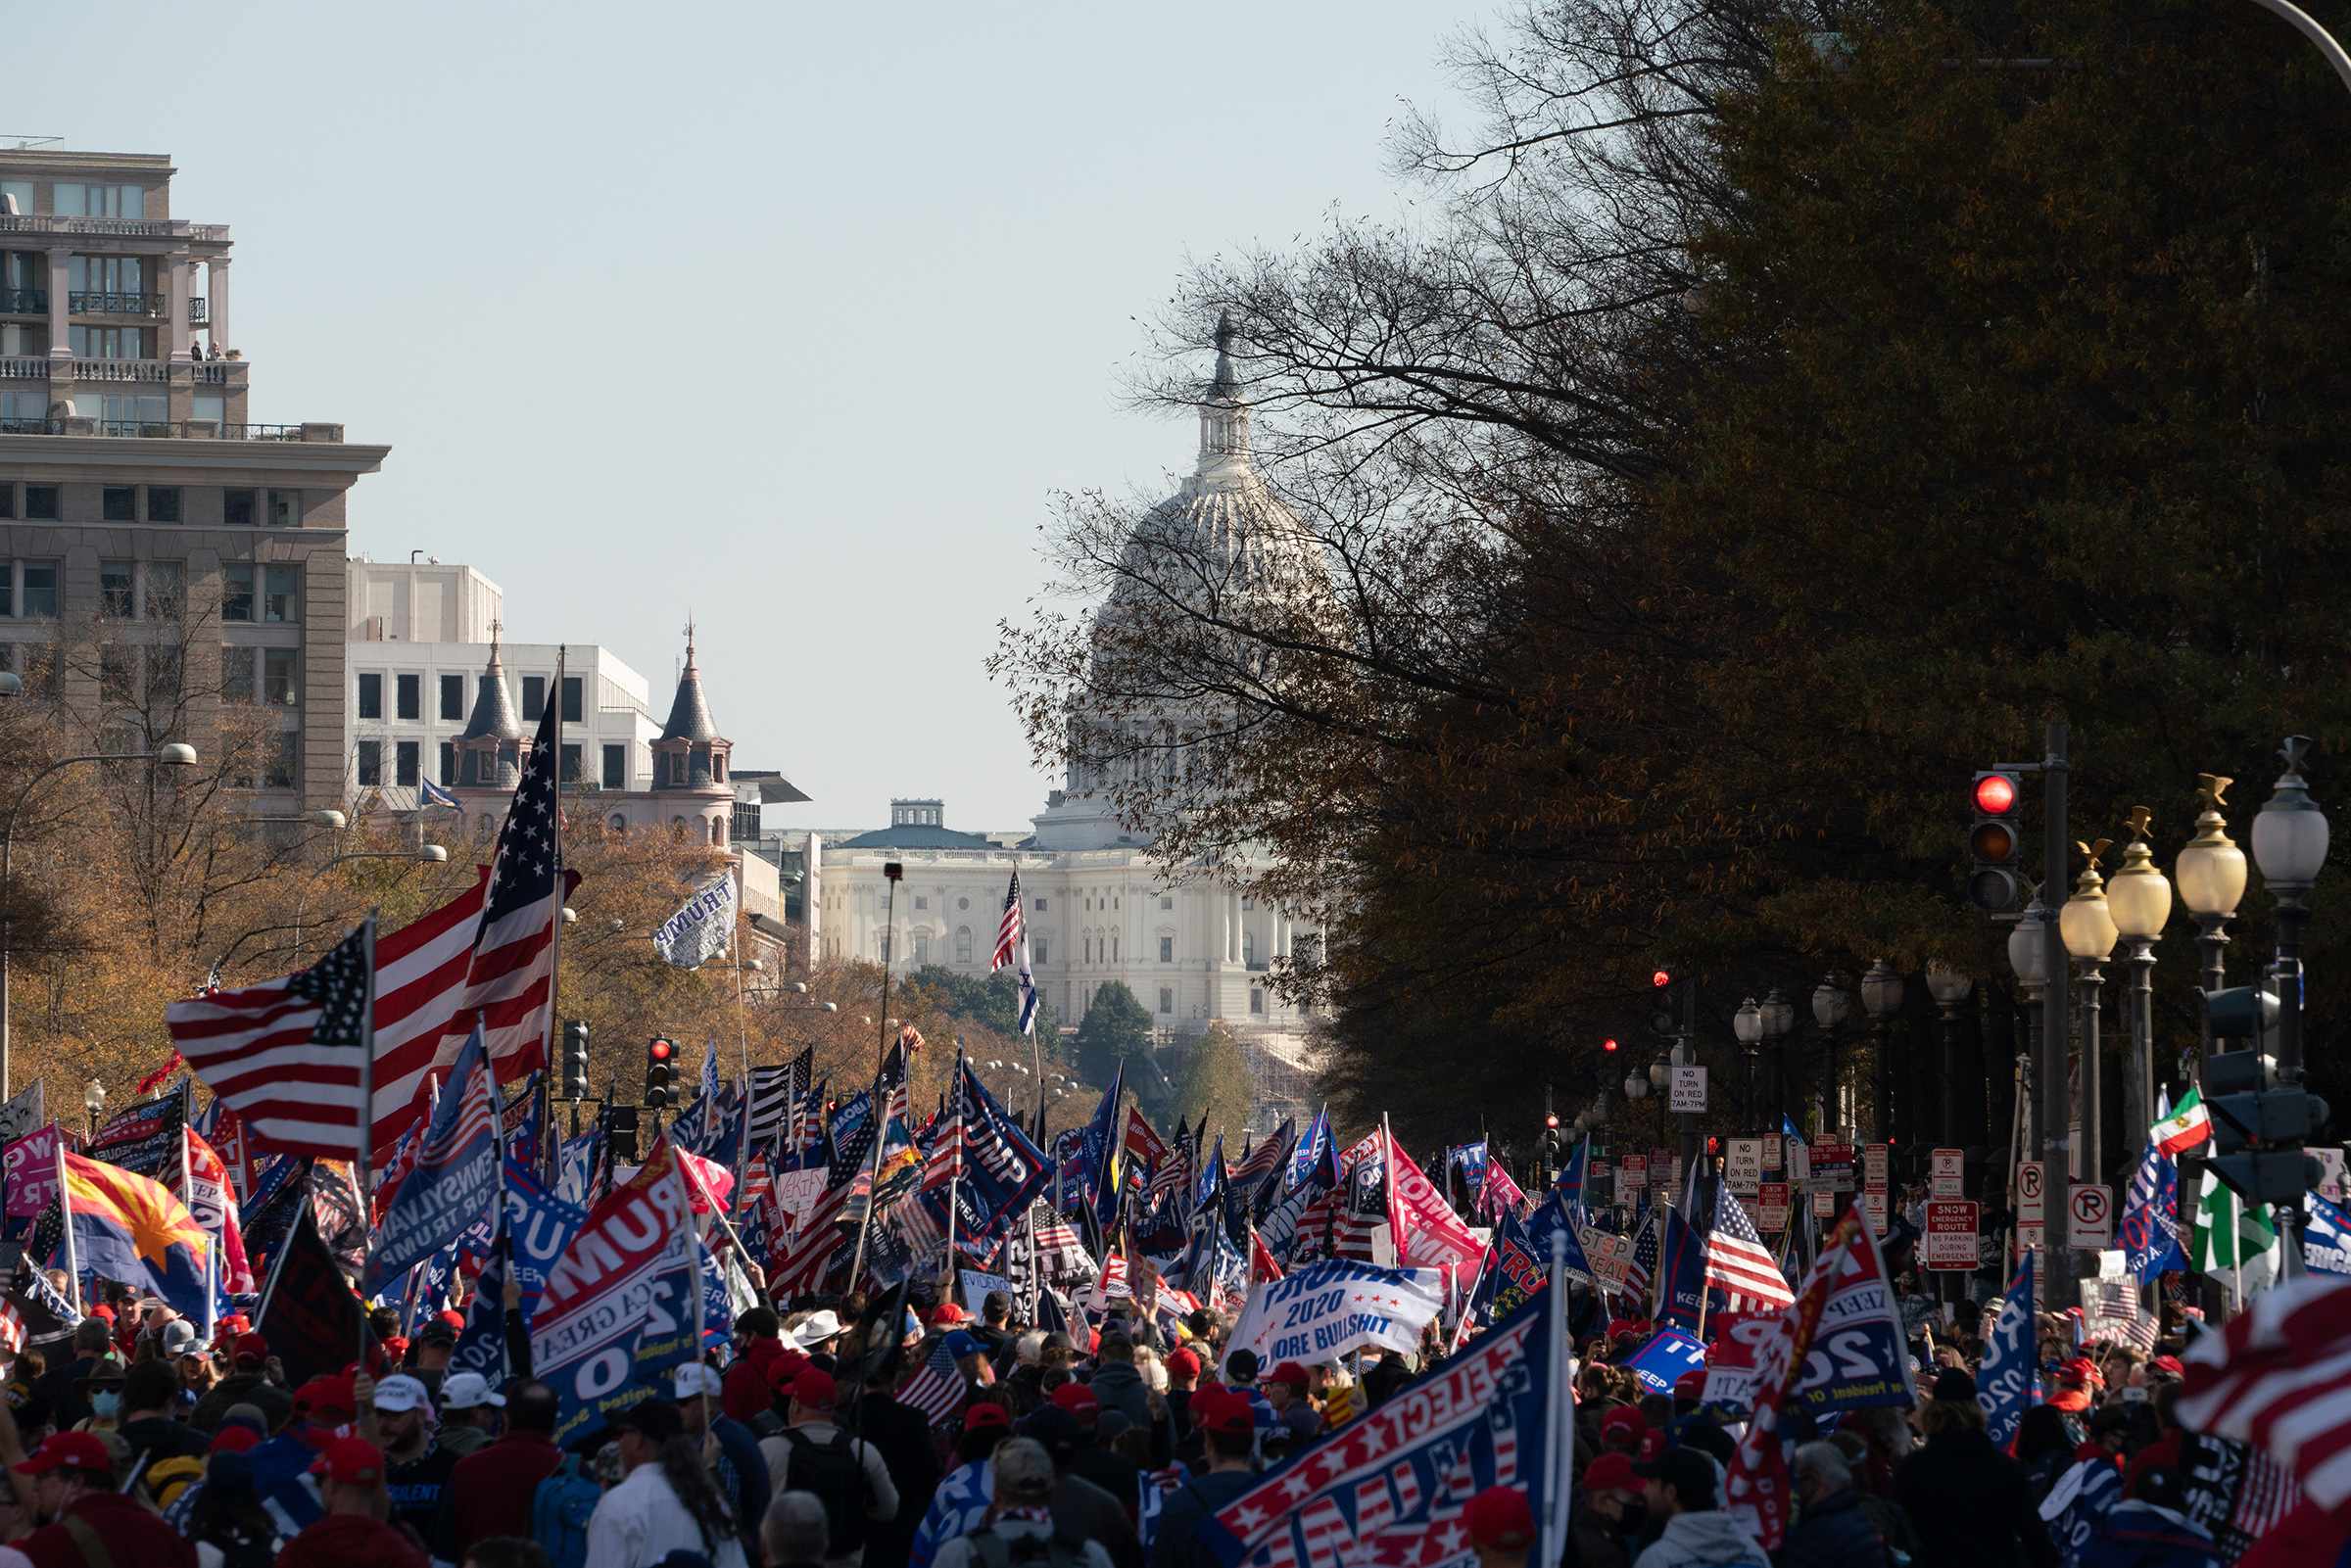 Supporters of President Donald Trump march to the Supreme Court to protest the election results in Washington, D.C., on Nov. 14, 2020.